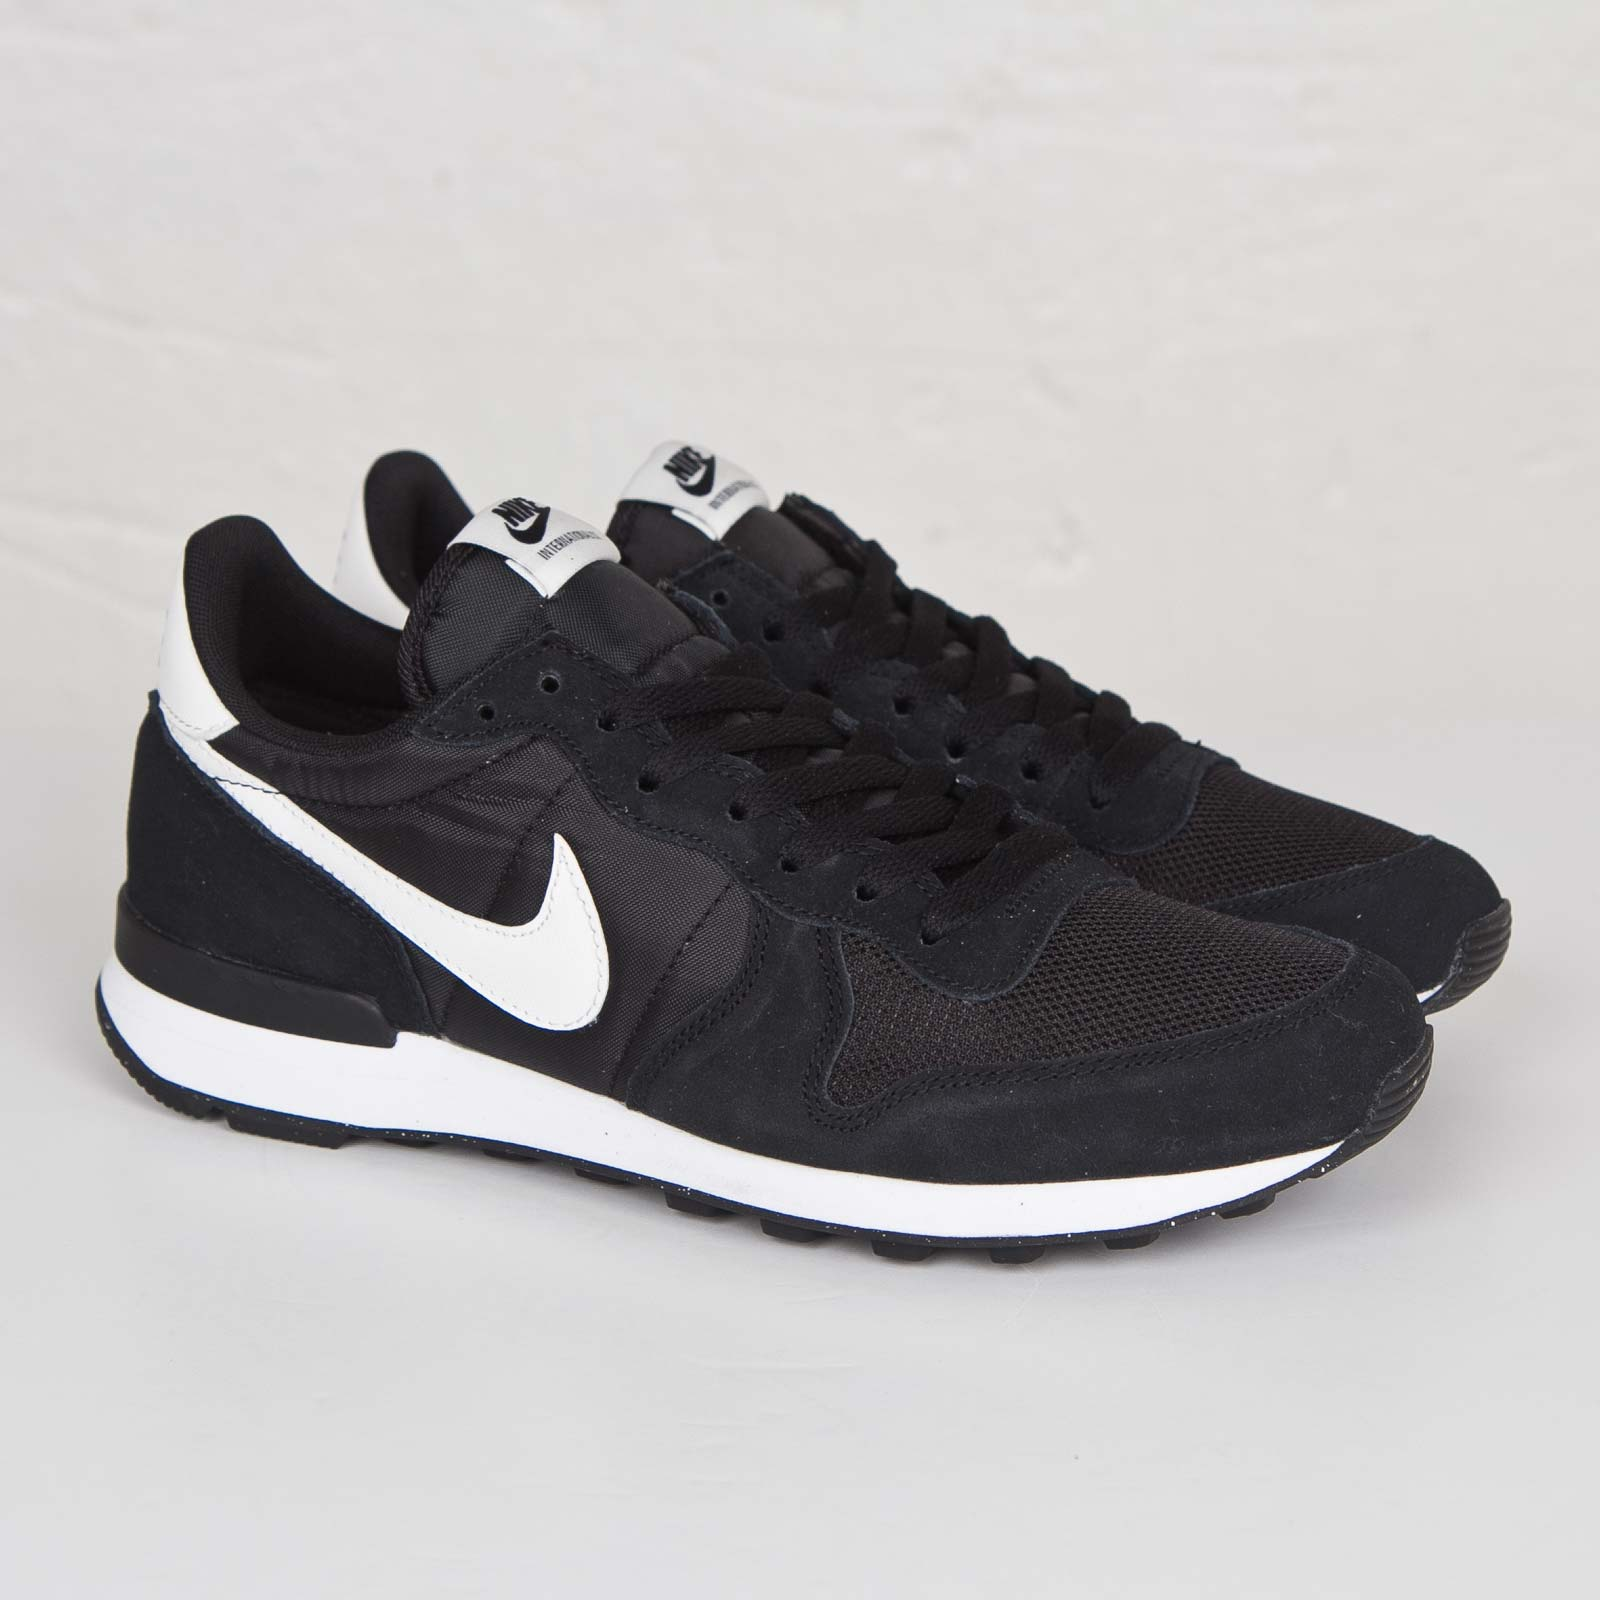 Nike Internationalist - 631754-011 - Sneakersnstuff | sneakers ...